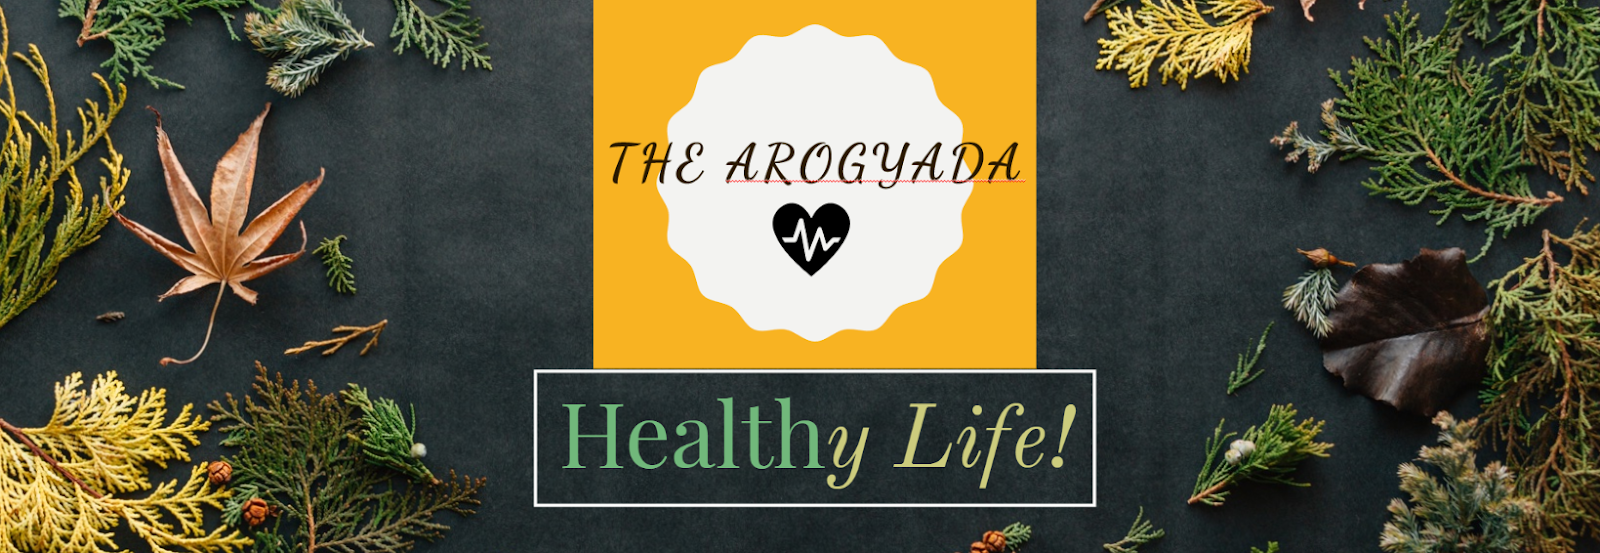 The Arogyada - Healthy Life, Always!